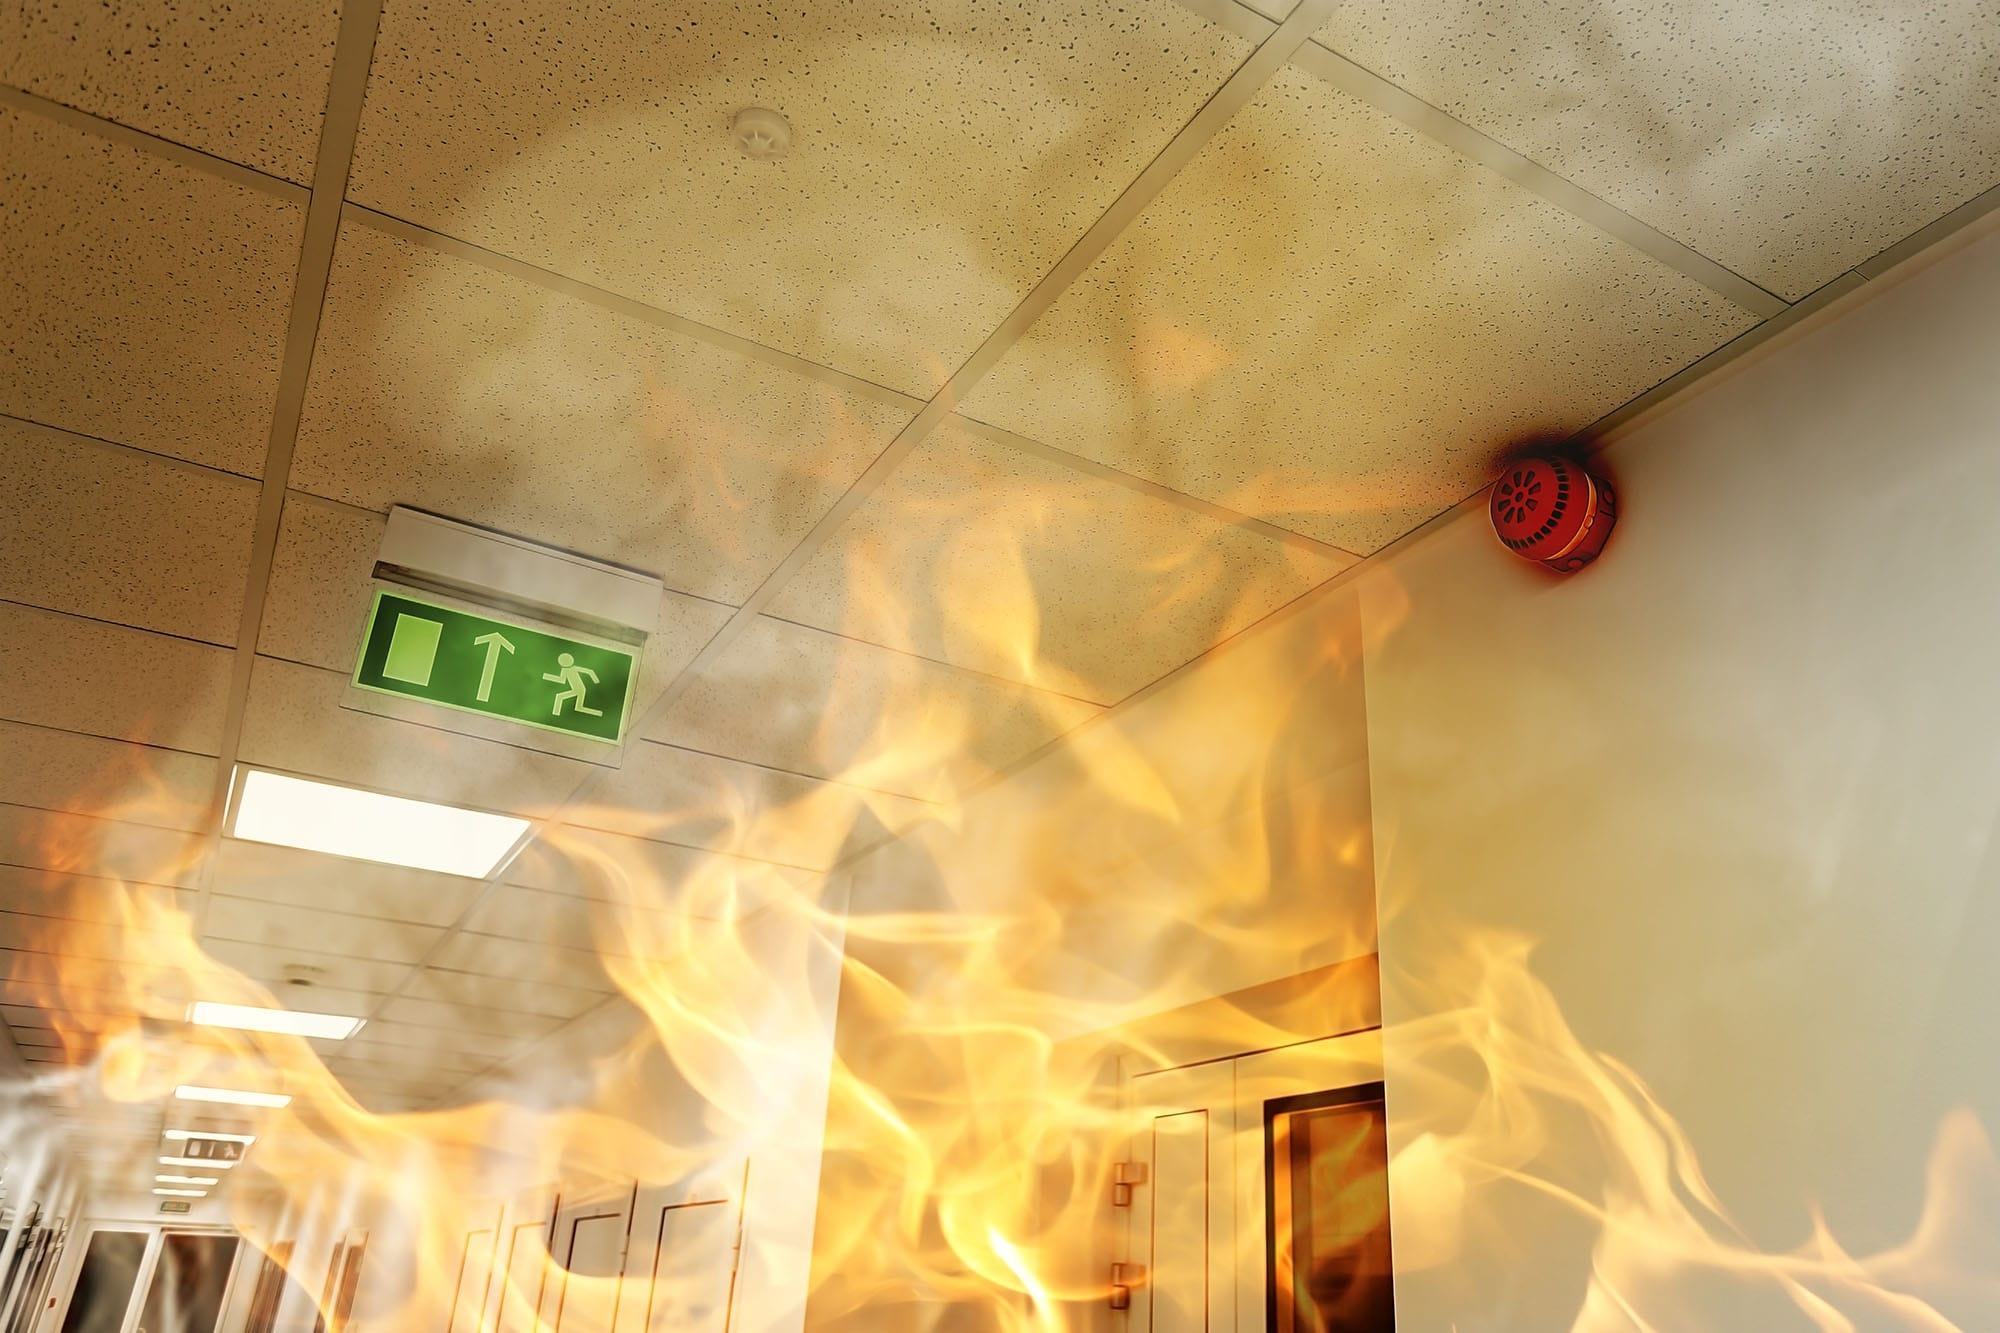 Tristan Meears-White: New Building Safety and Fire Safety Bills